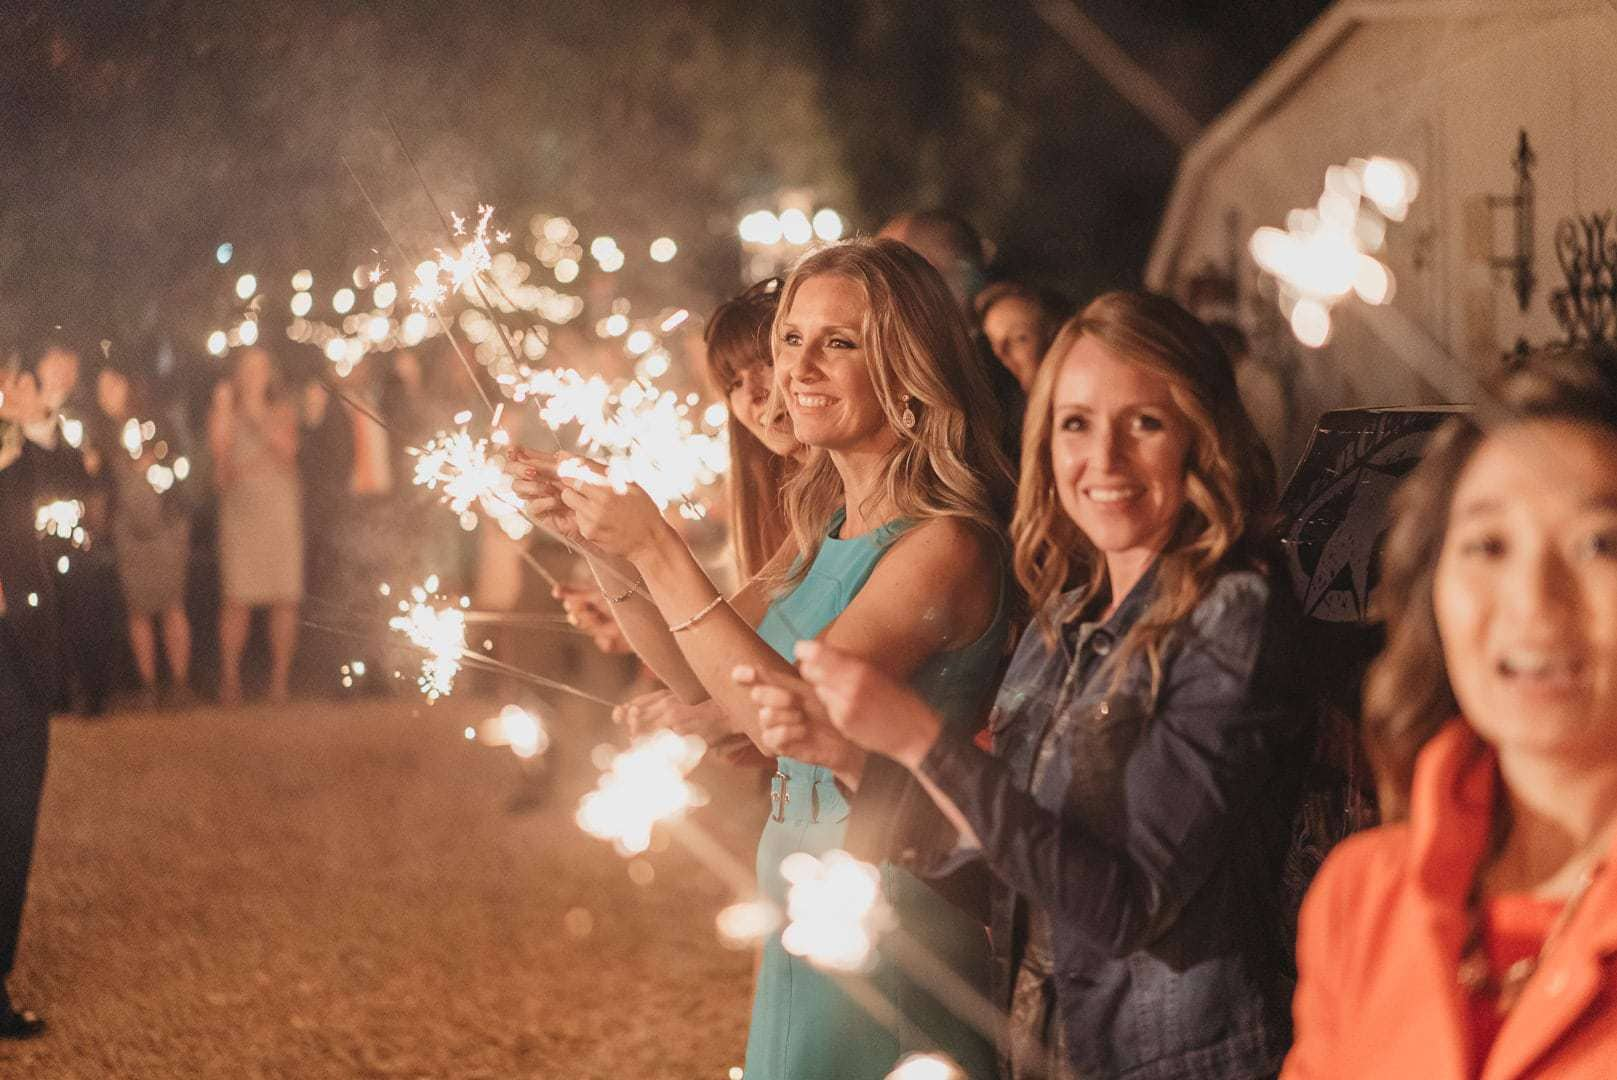 Guests hold sparklers out after wedding reception